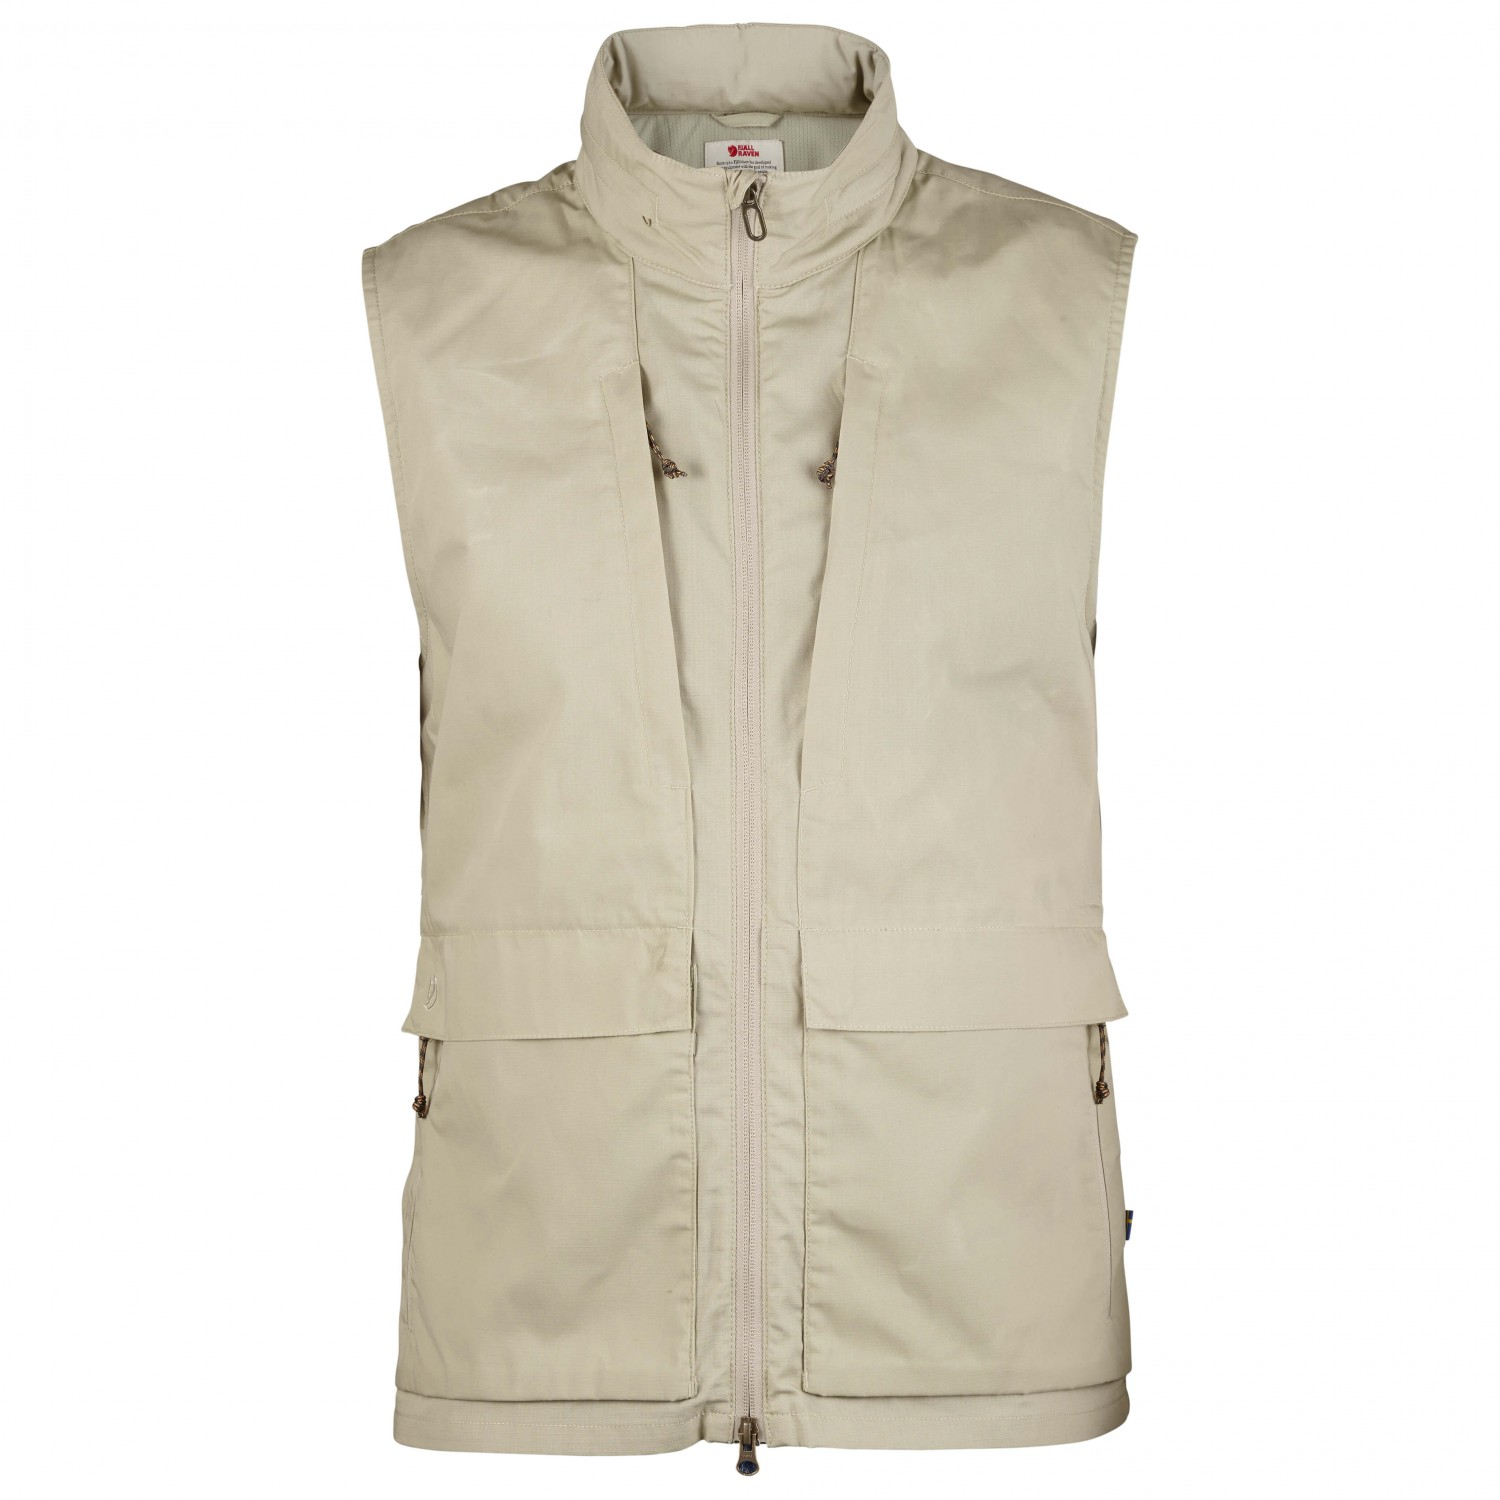 Fjällräven Travellers Vest - Softshell Vest Men's | Free UK Delivery | Alpinetrek.co.uk